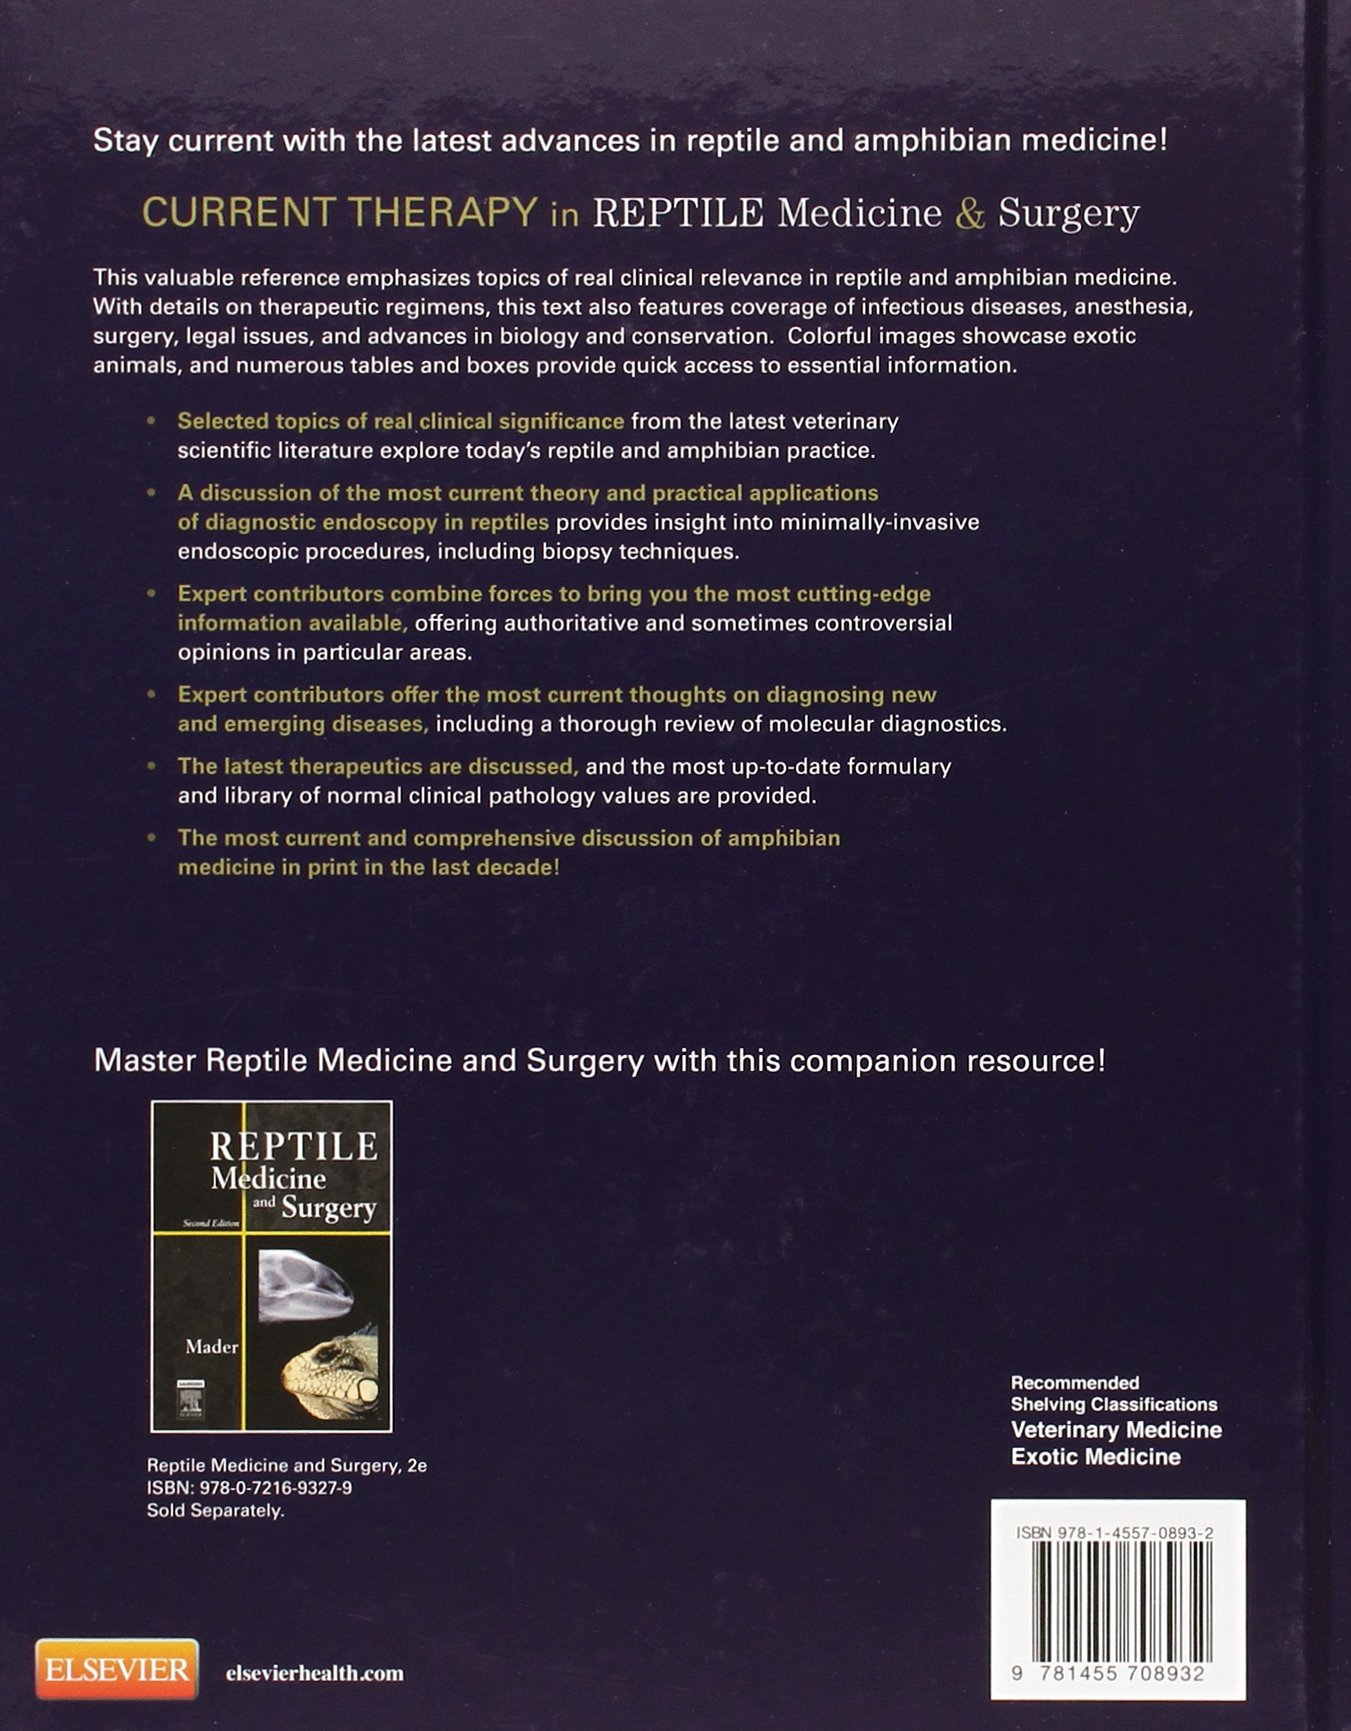 Current Therapy in Reptile Medicine and Surgery, 1e: Amazon.co.uk: Douglas  R. Mader MS DVM, Stephen J. Divers BVetMed DZooMed DACZM DipECZM(herp)  FRCVS: ...